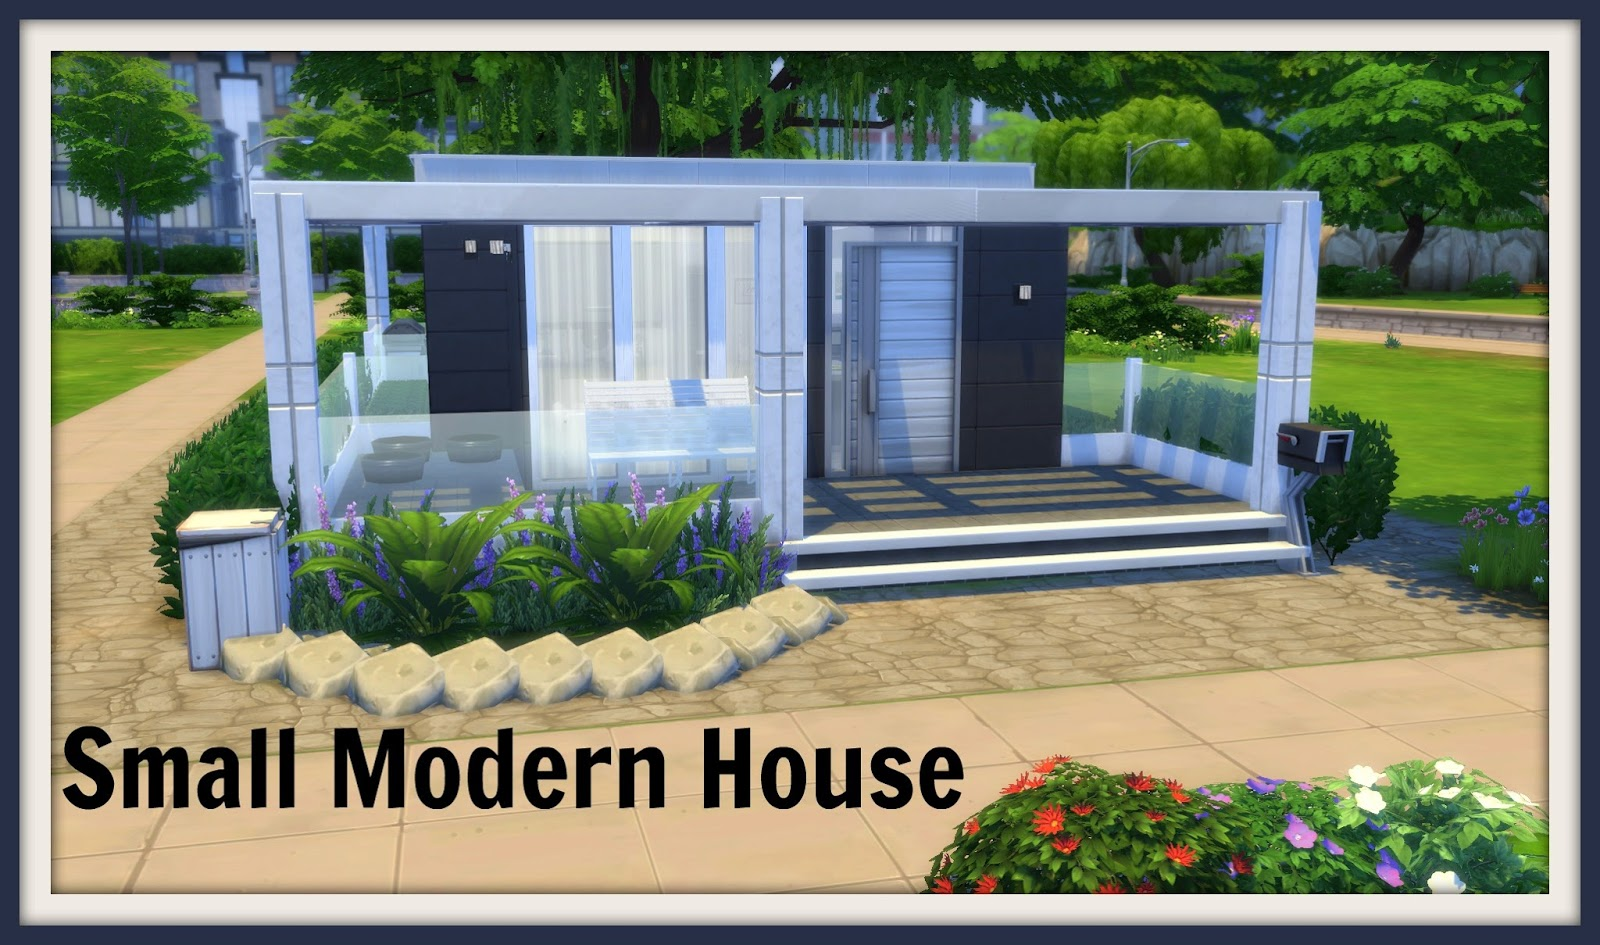 Sims 4 - Small Modern House - Dinha